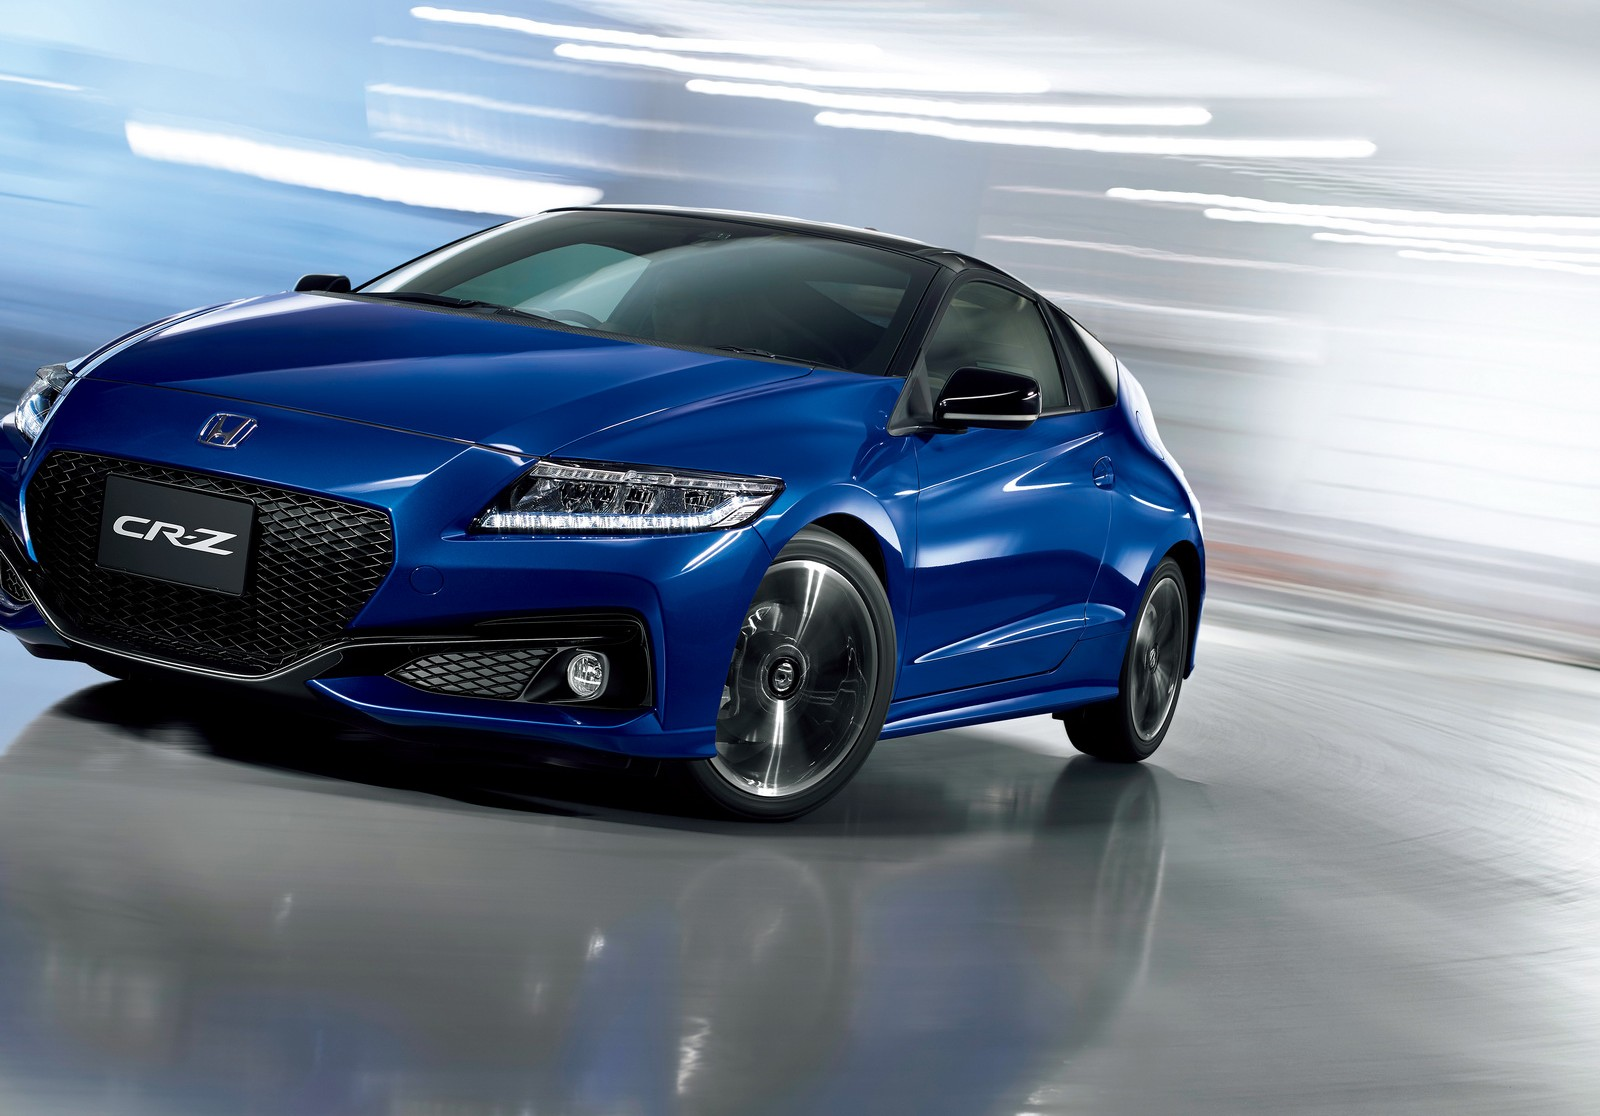 2016 honda cr z facelift unveiled pakwheels blog. Black Bedroom Furniture Sets. Home Design Ideas